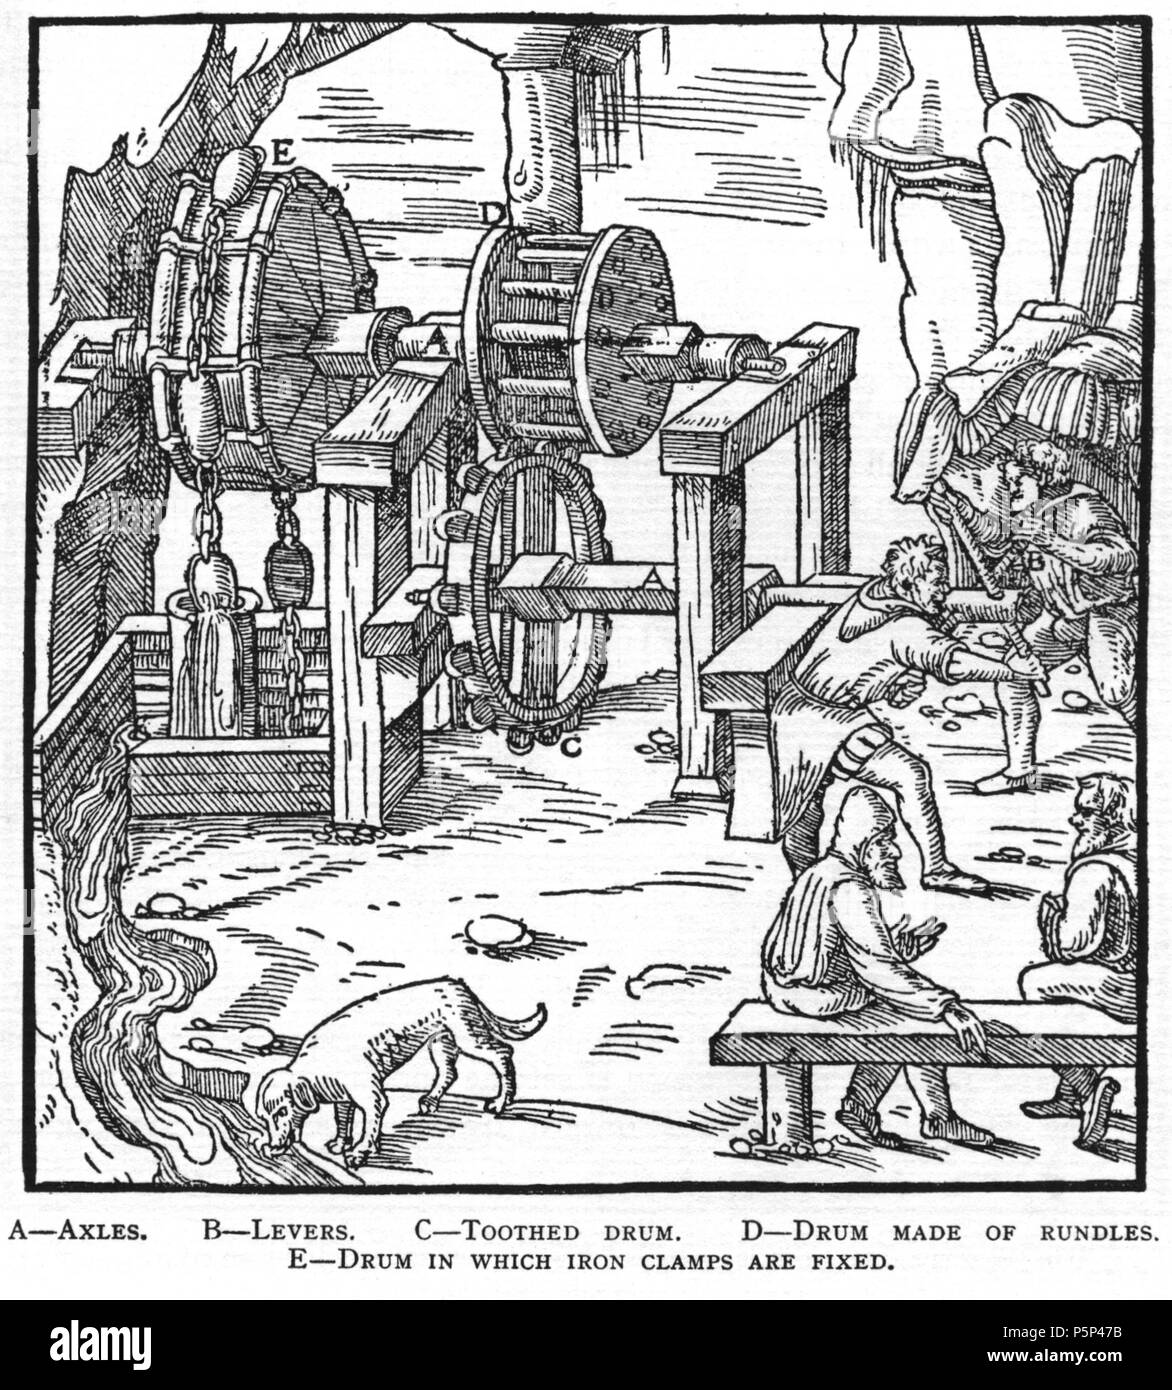 N/A. Woodcut illustration from De re metallica by Georgius Agricola. This is a 300dpi scan from the 1950 Dover edition of the 1913 Hoover translation of the 1556 reference. The Dover edition has slightly smaller size prints than the Hoover (which is a rare book). The woodcuts were recreated for the 1913 printing. Filenames (except for the title page) indicate the chapter (2, 3, 5, etc.) followed by the sequential number of the illustration. 2 May 2005, 07:06:32. TCO (talk) 223 Book6-35 - Stock Image